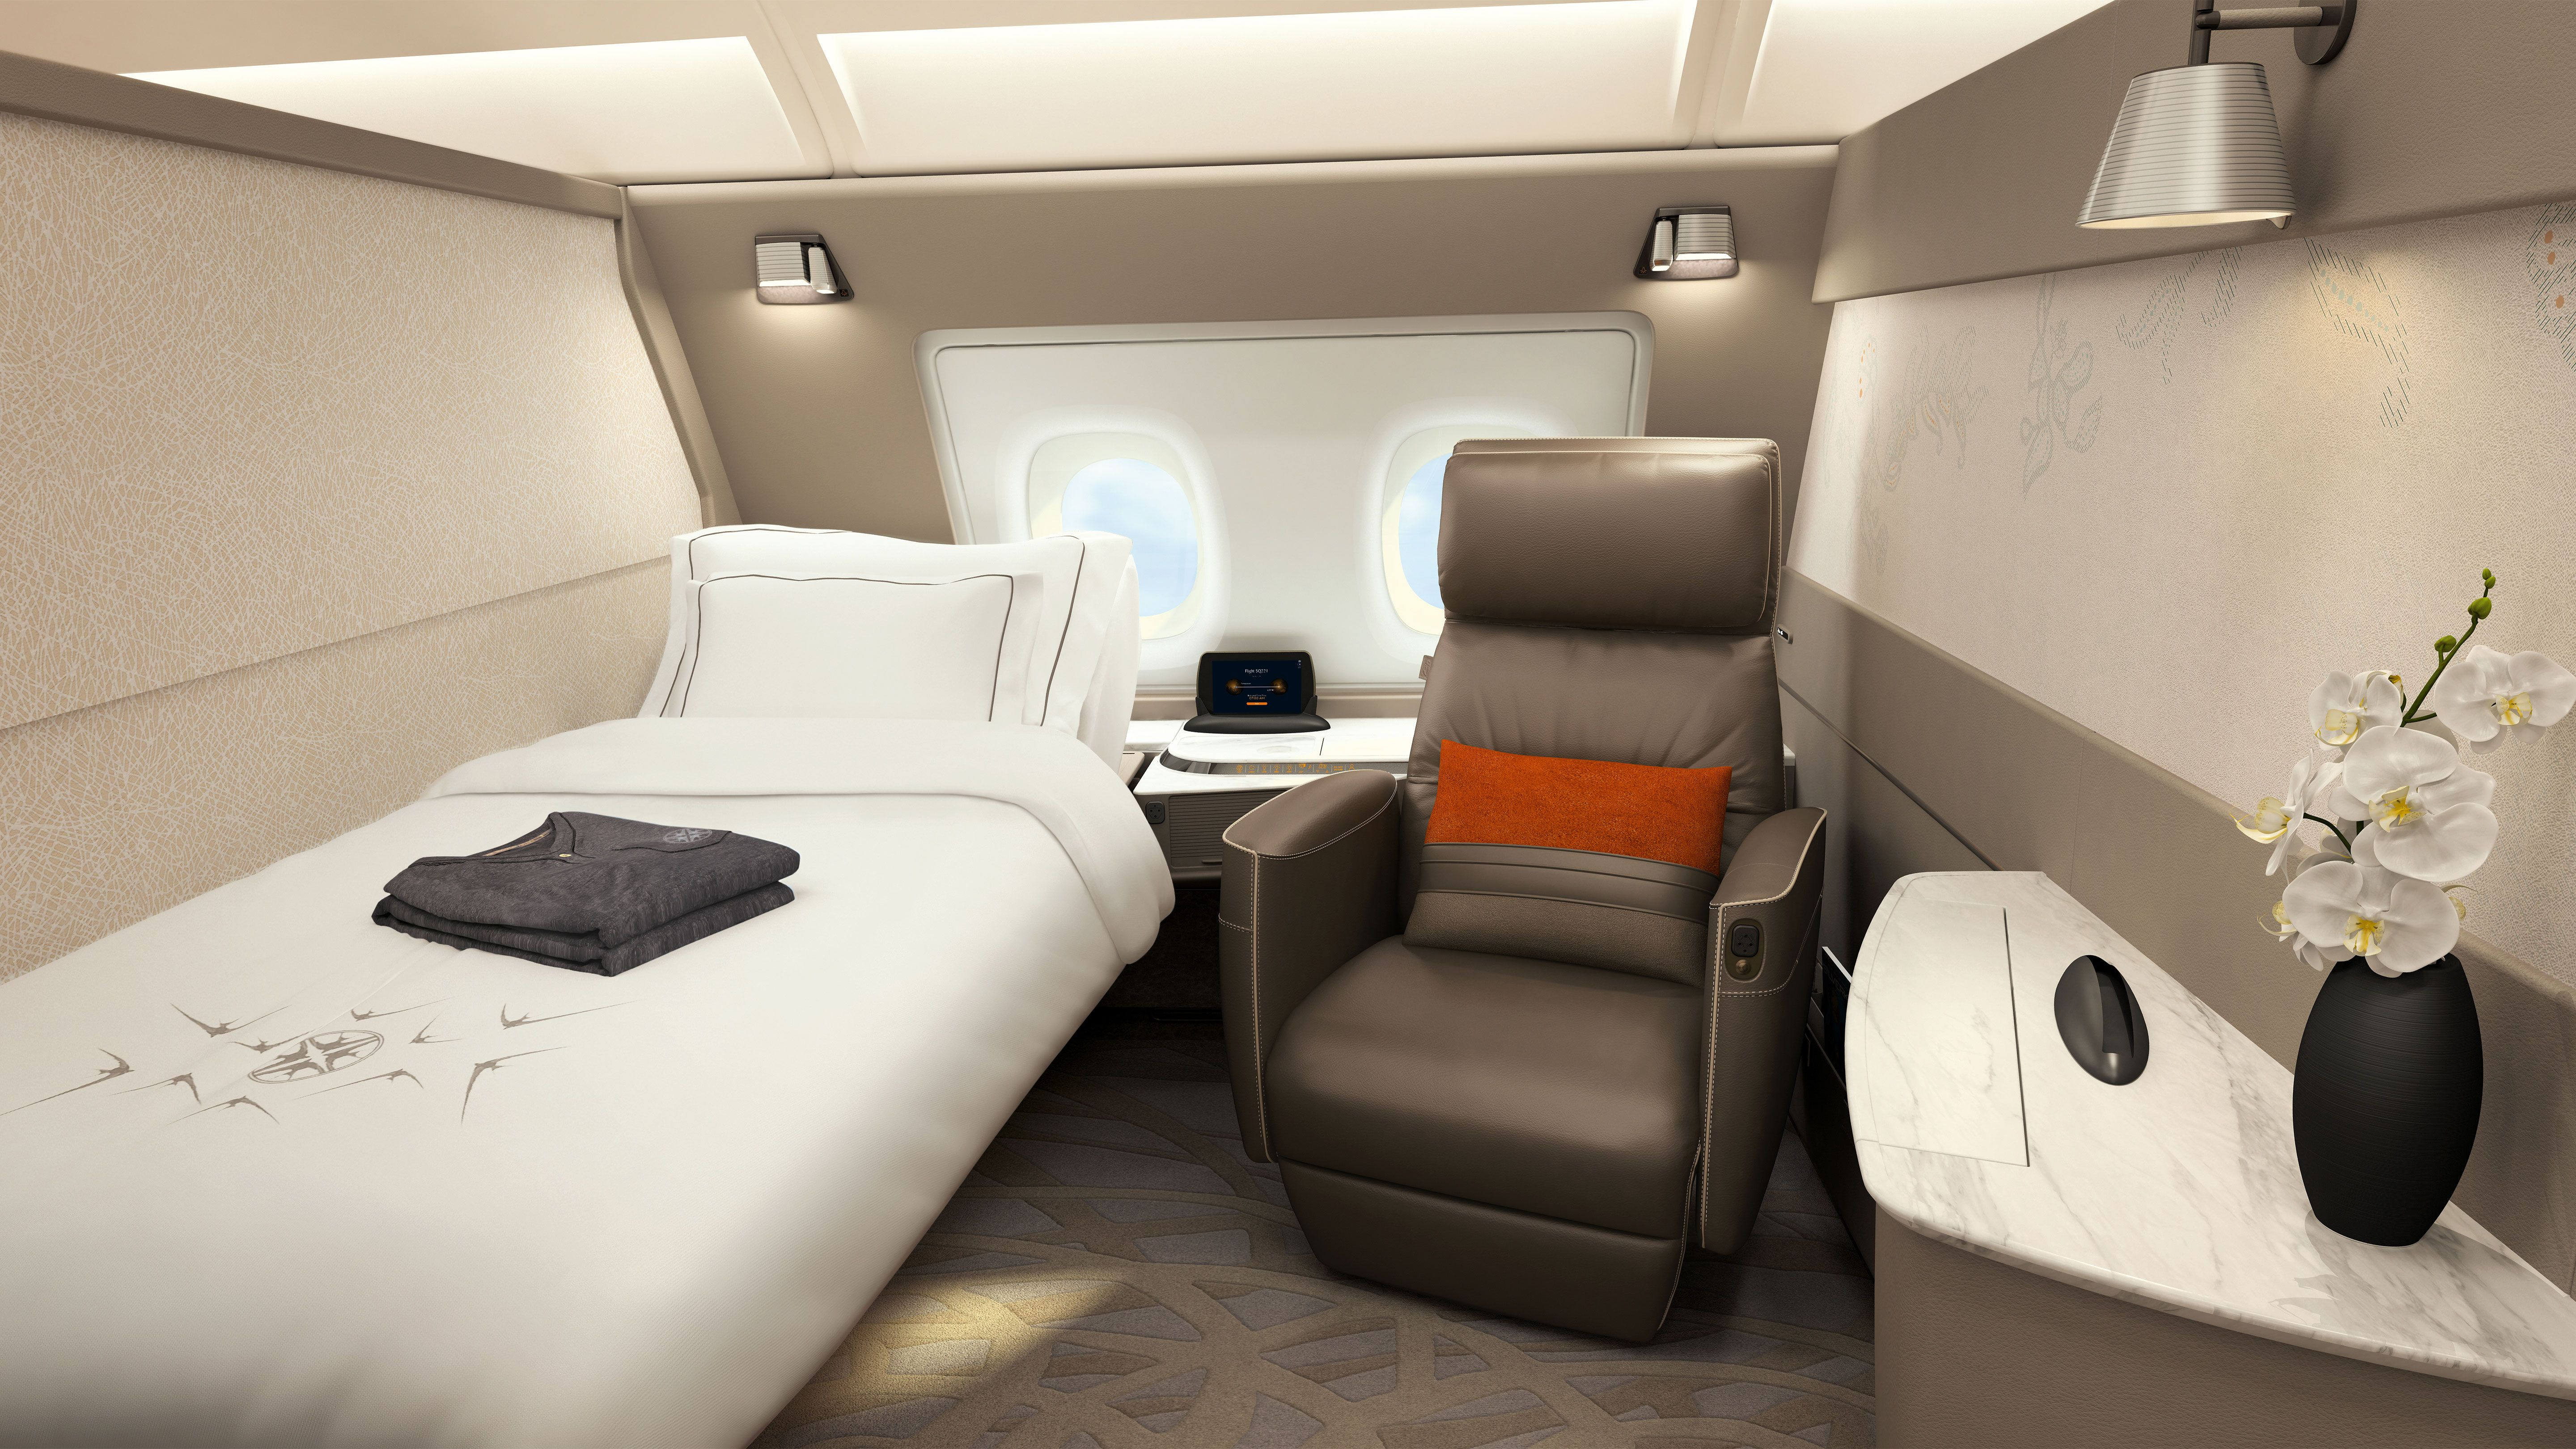 Poltrona First Class.Singapore Airlines New First Class Suites Ultra Luxurious